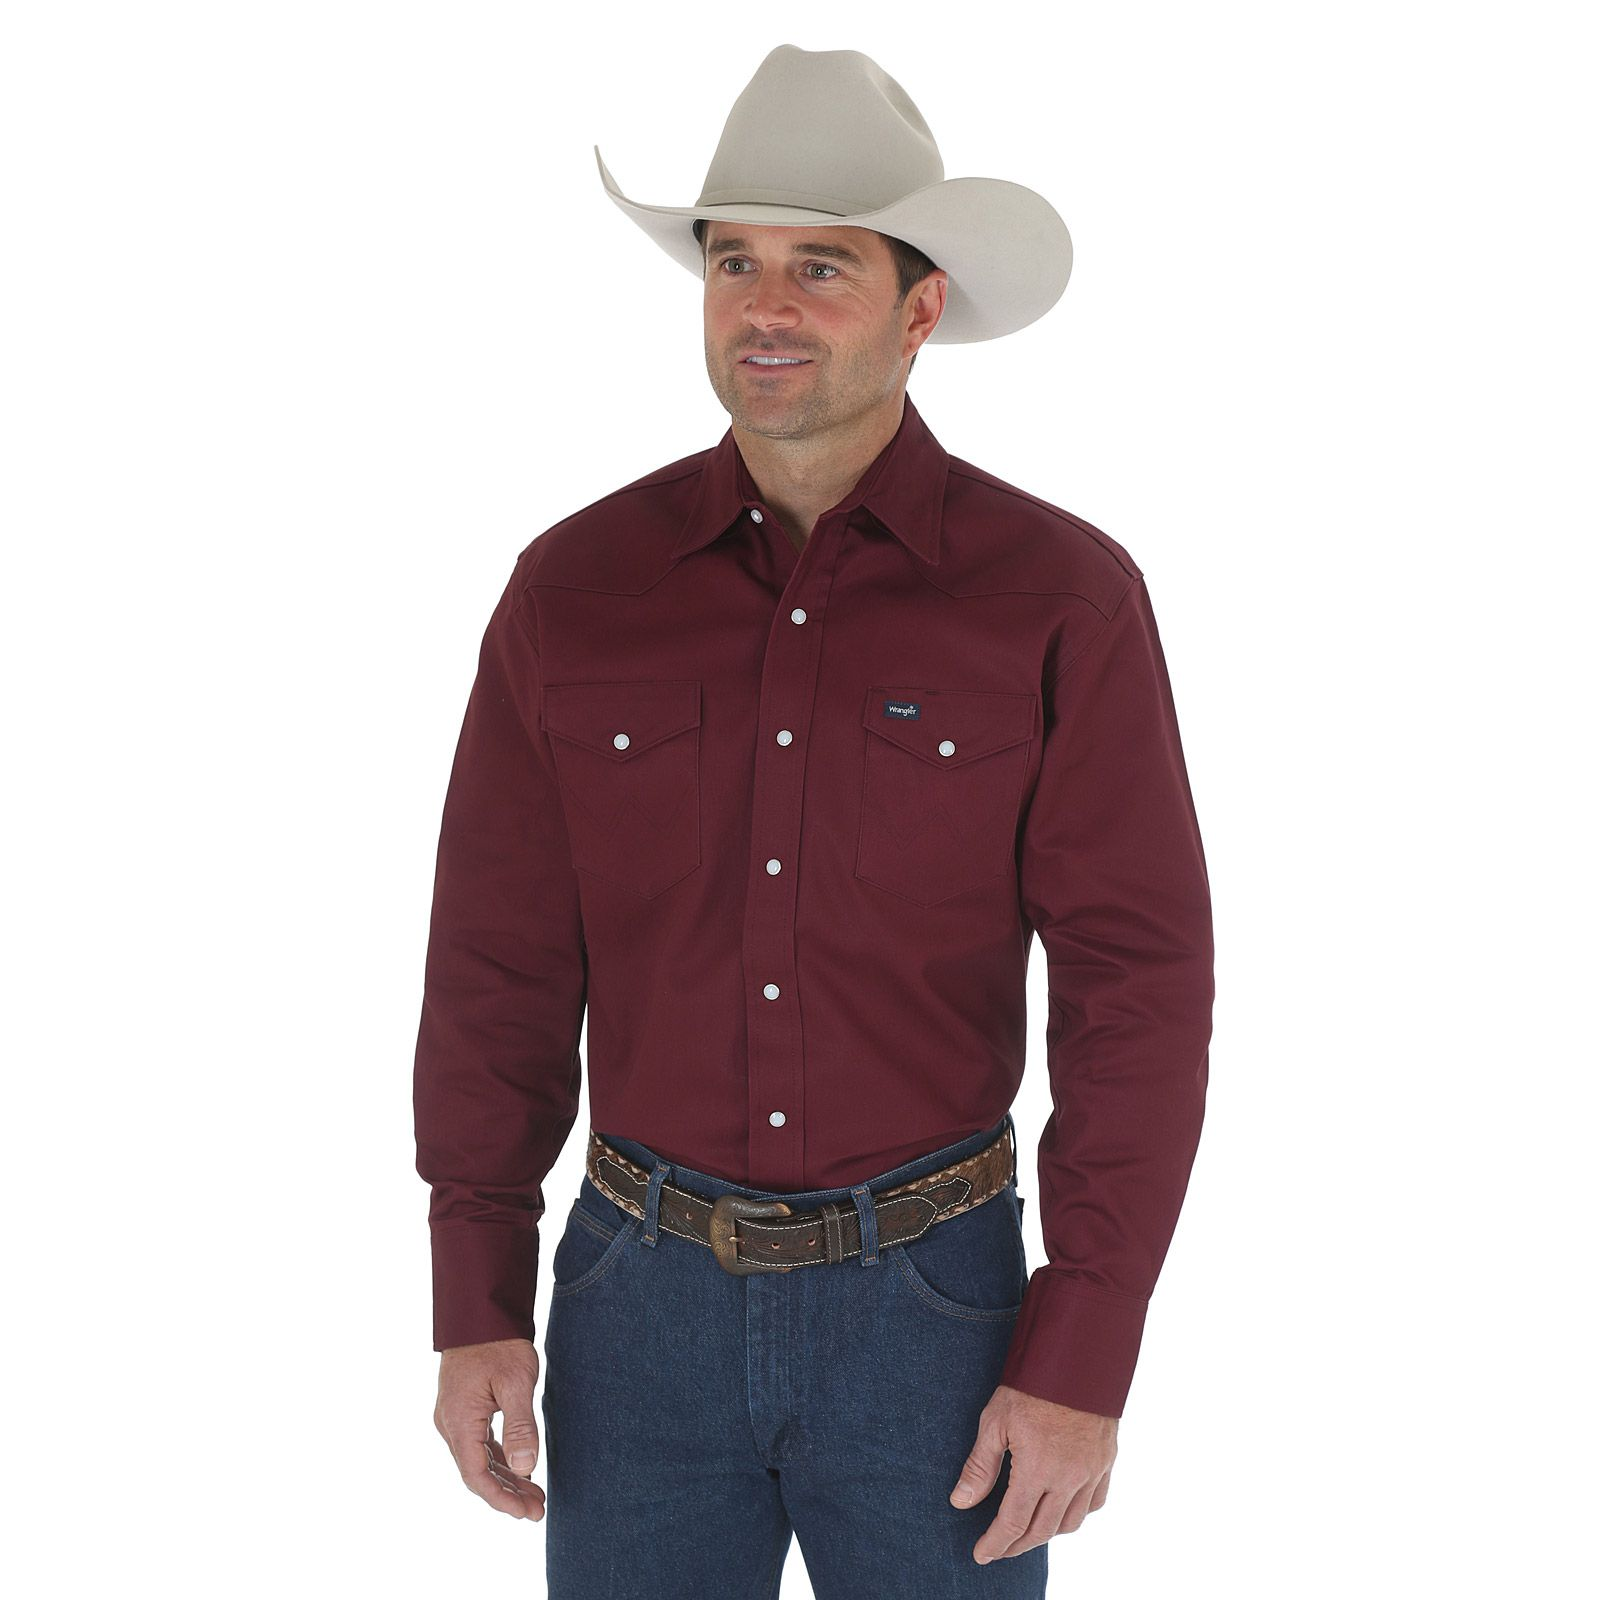 Shirt only for grandaddy with brown pants wedding stuff